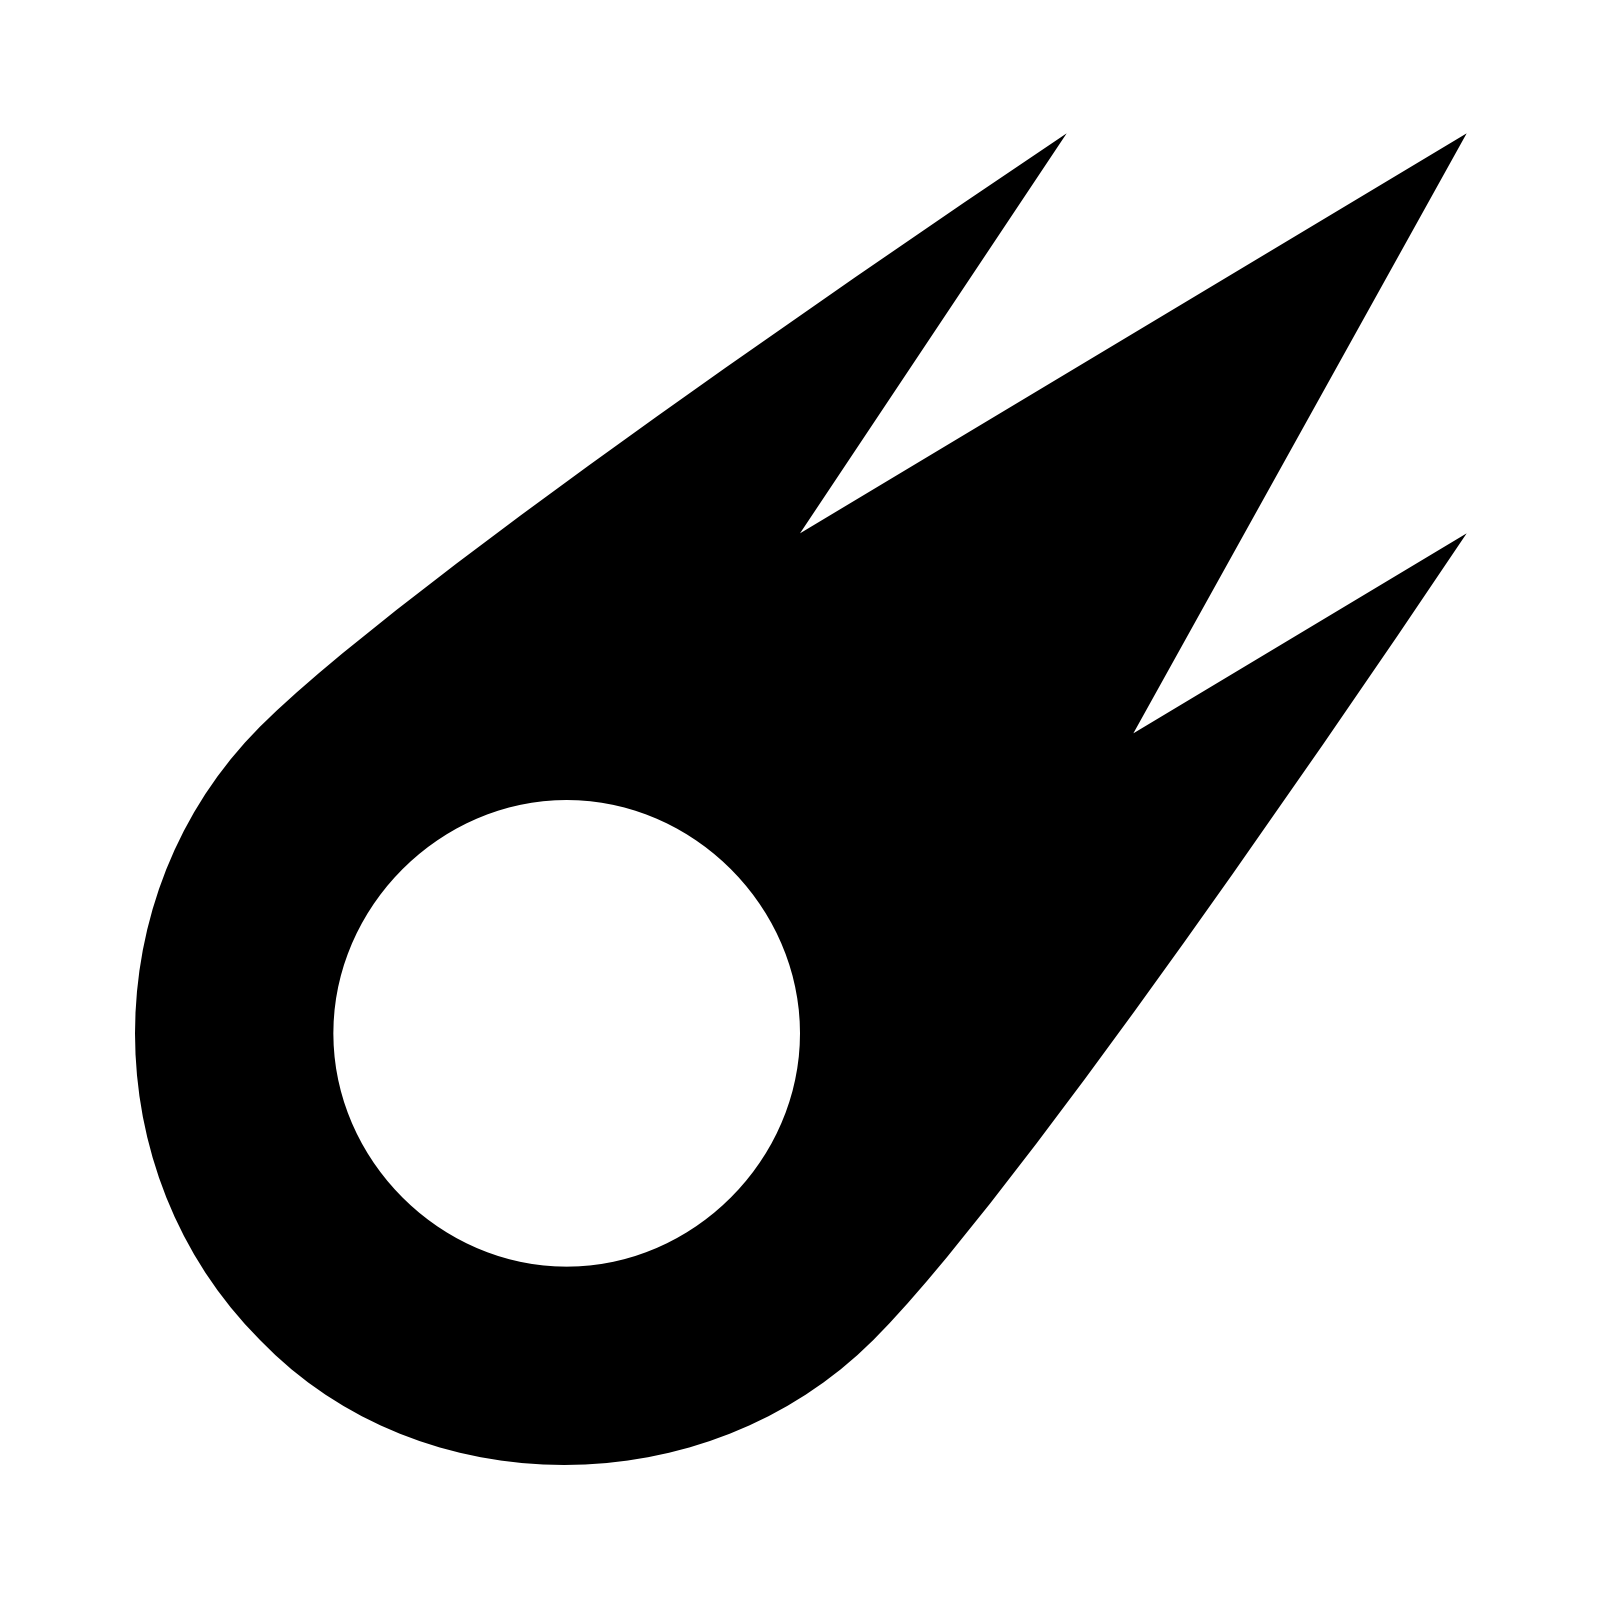 Photo Black Comet Symbol image #48529